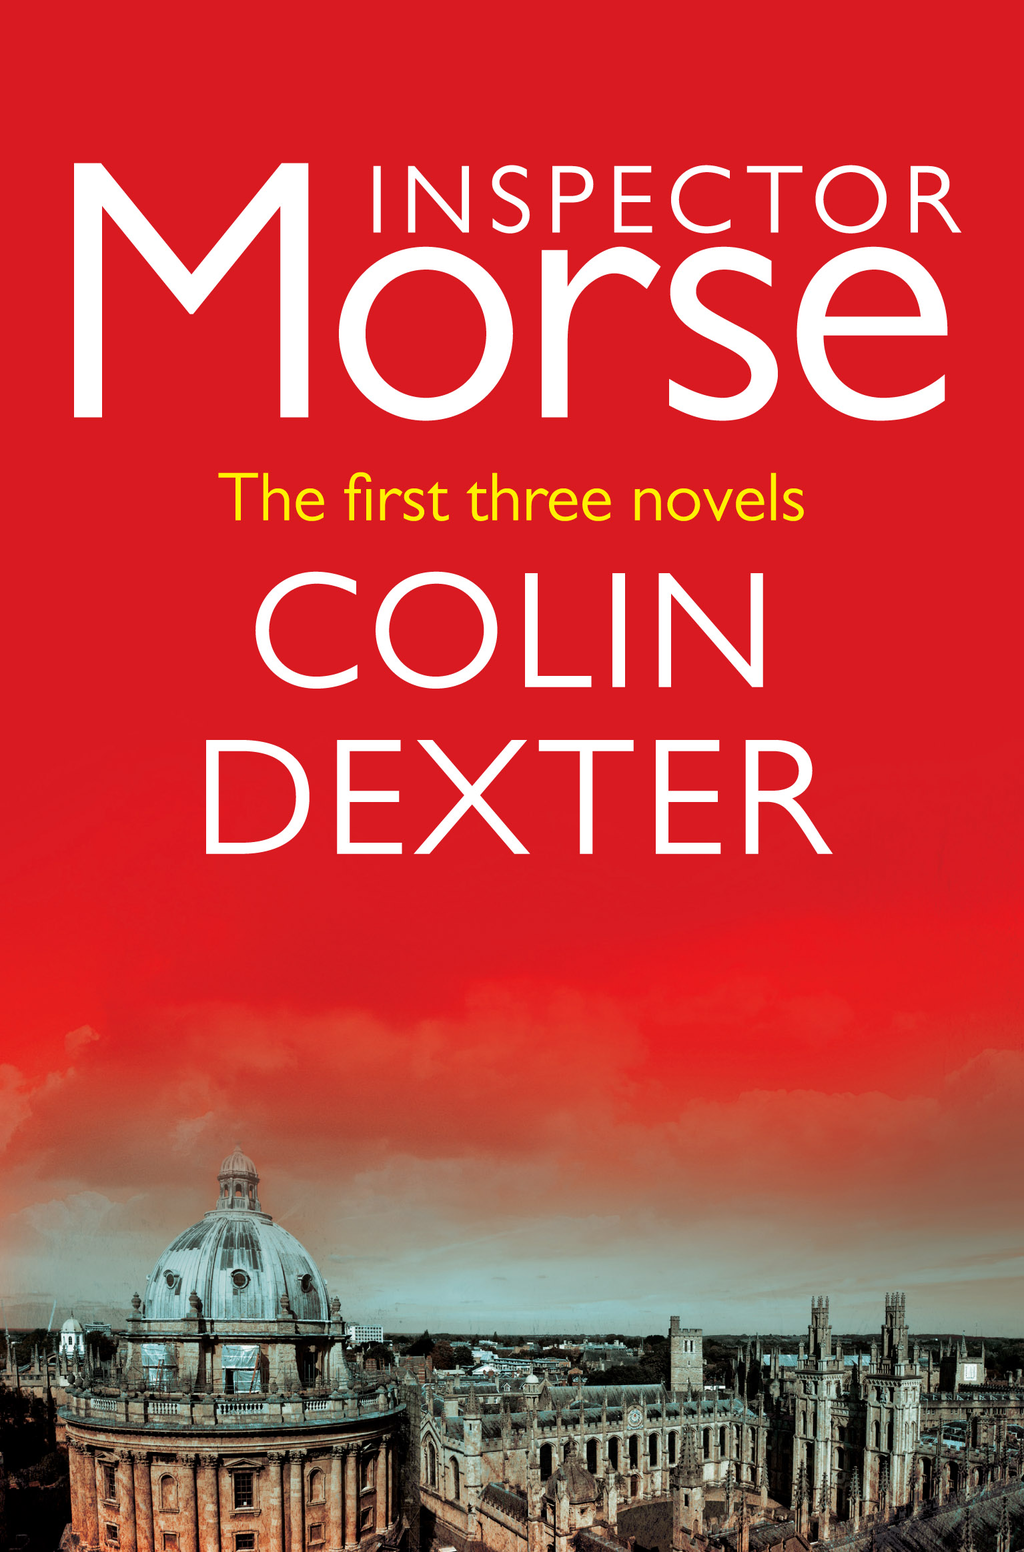 Inspector Morse: The first three novels